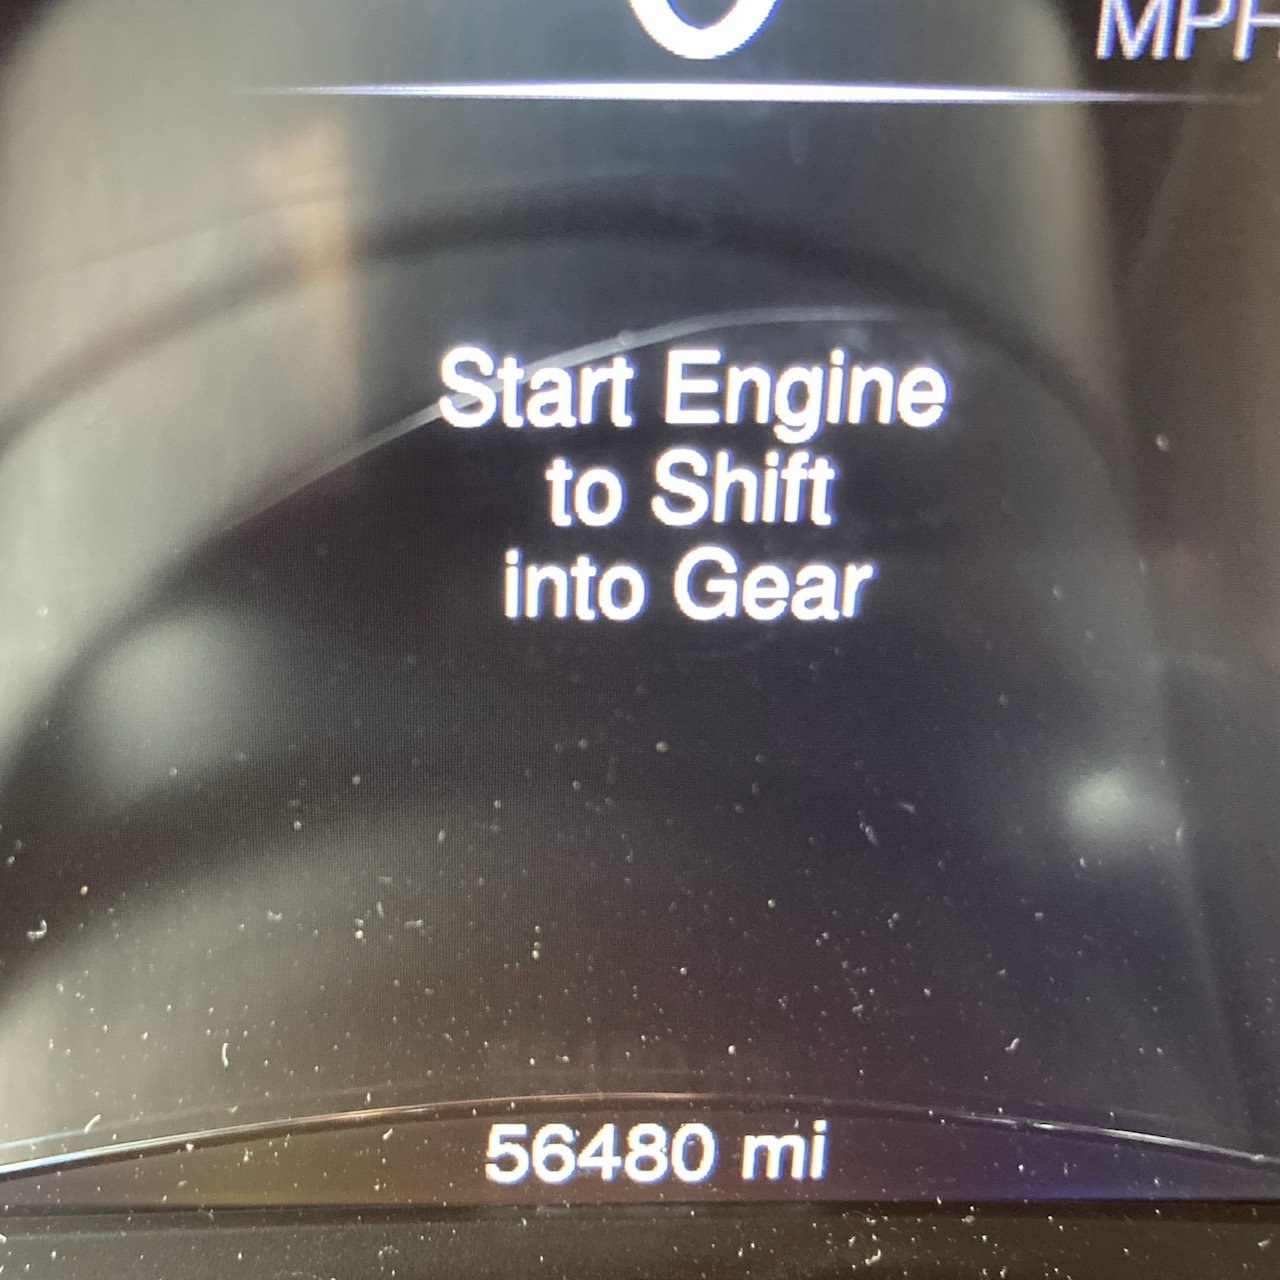 Car odometer reading 56480